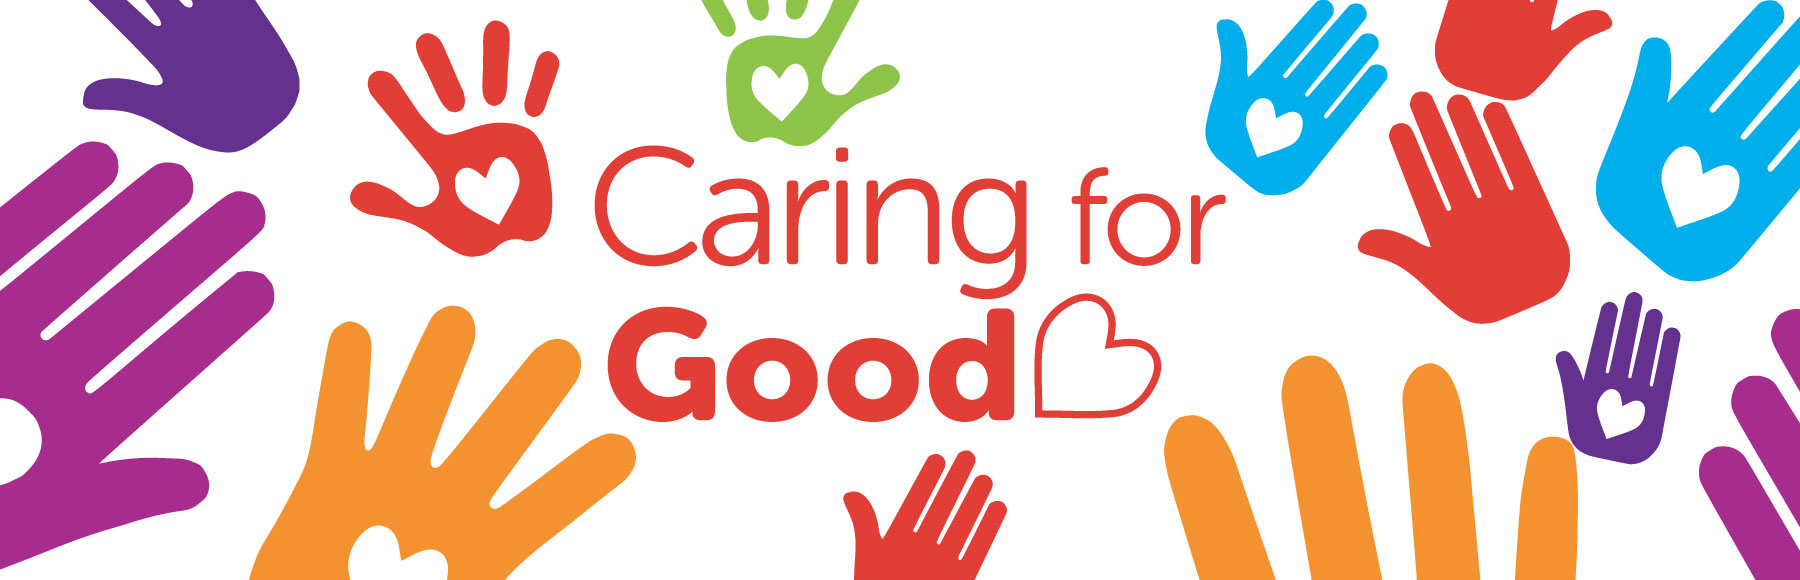 Caring for Good